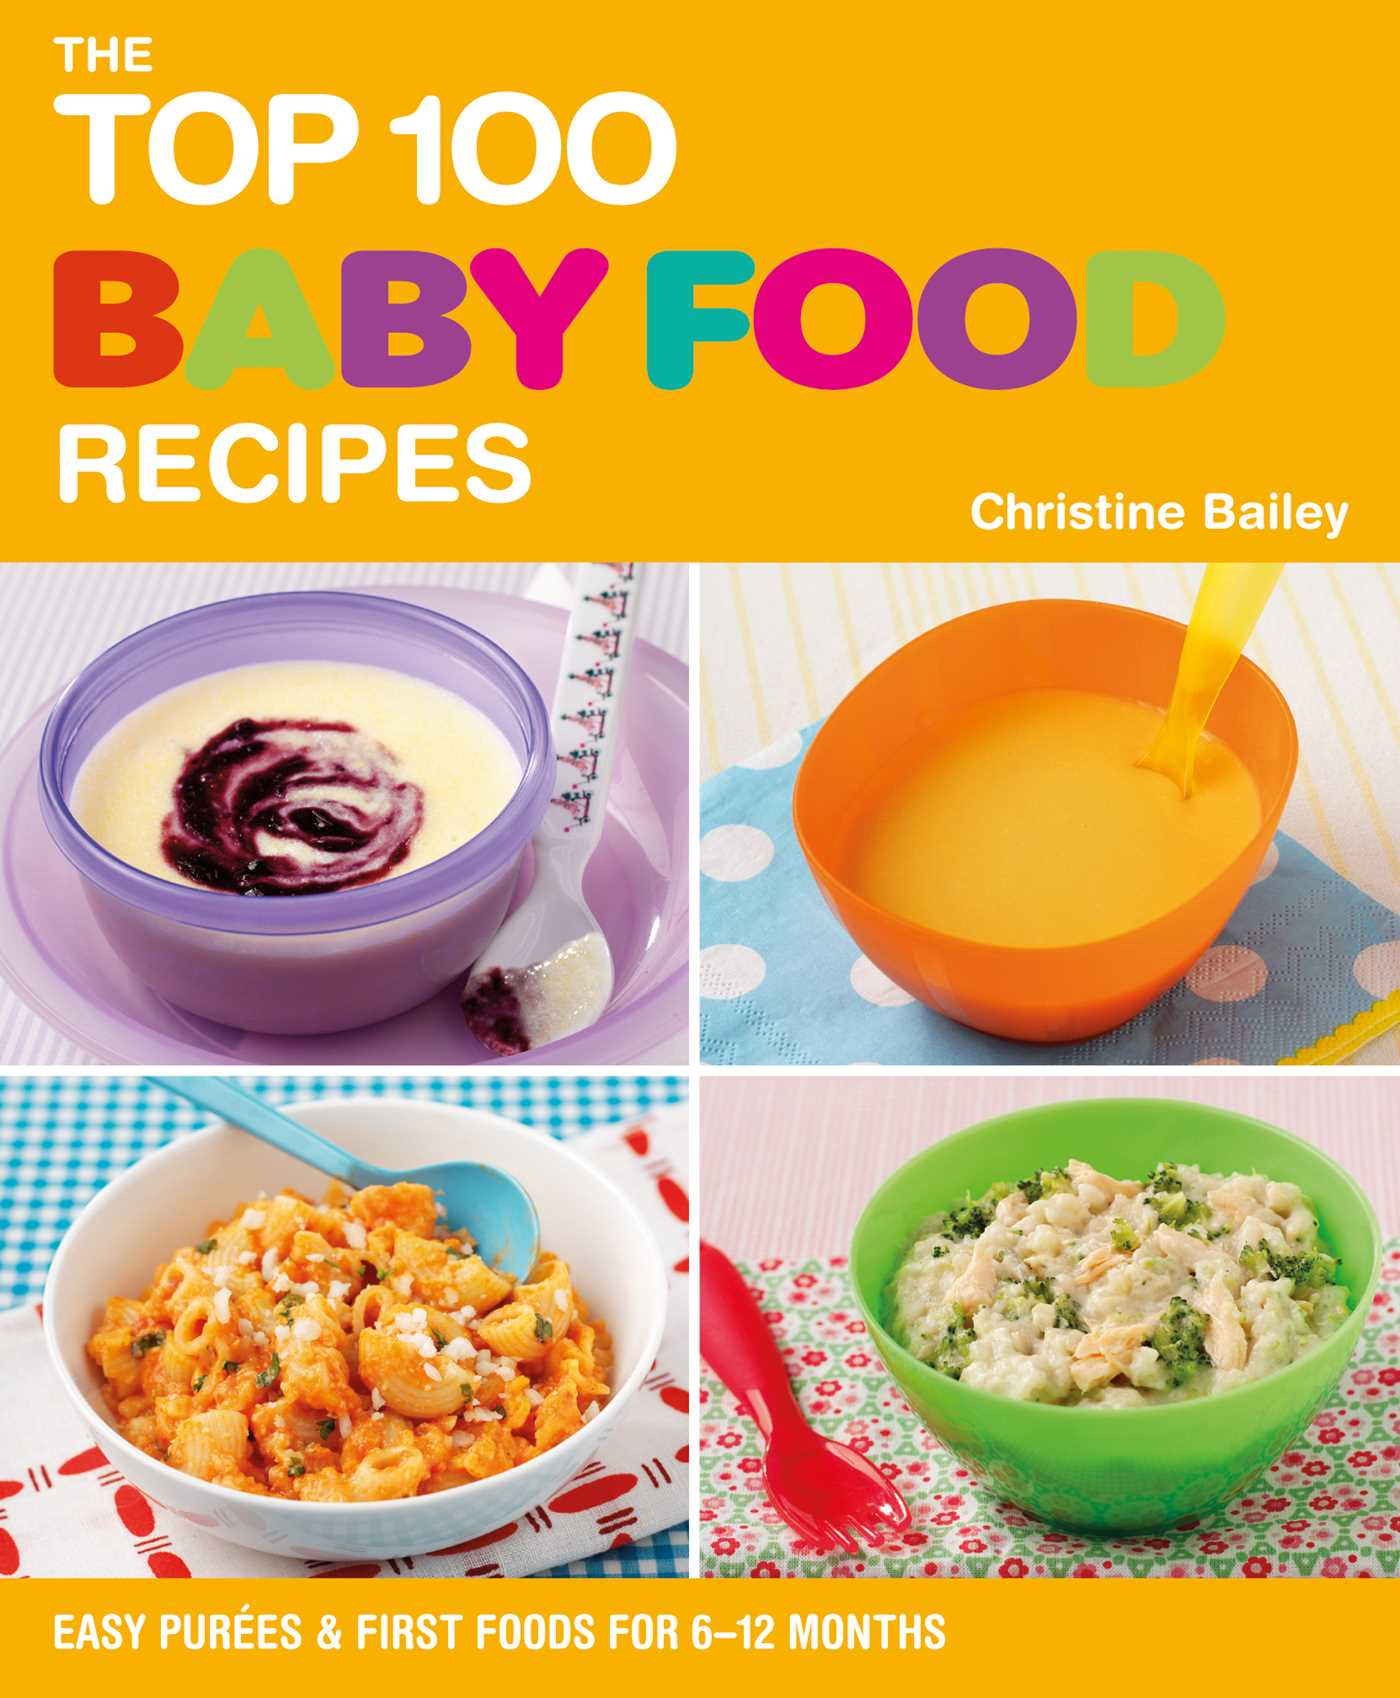 Top 100 baby food recipes book by christine bailey official book cover image jpg top 100 baby food recipes forumfinder Images